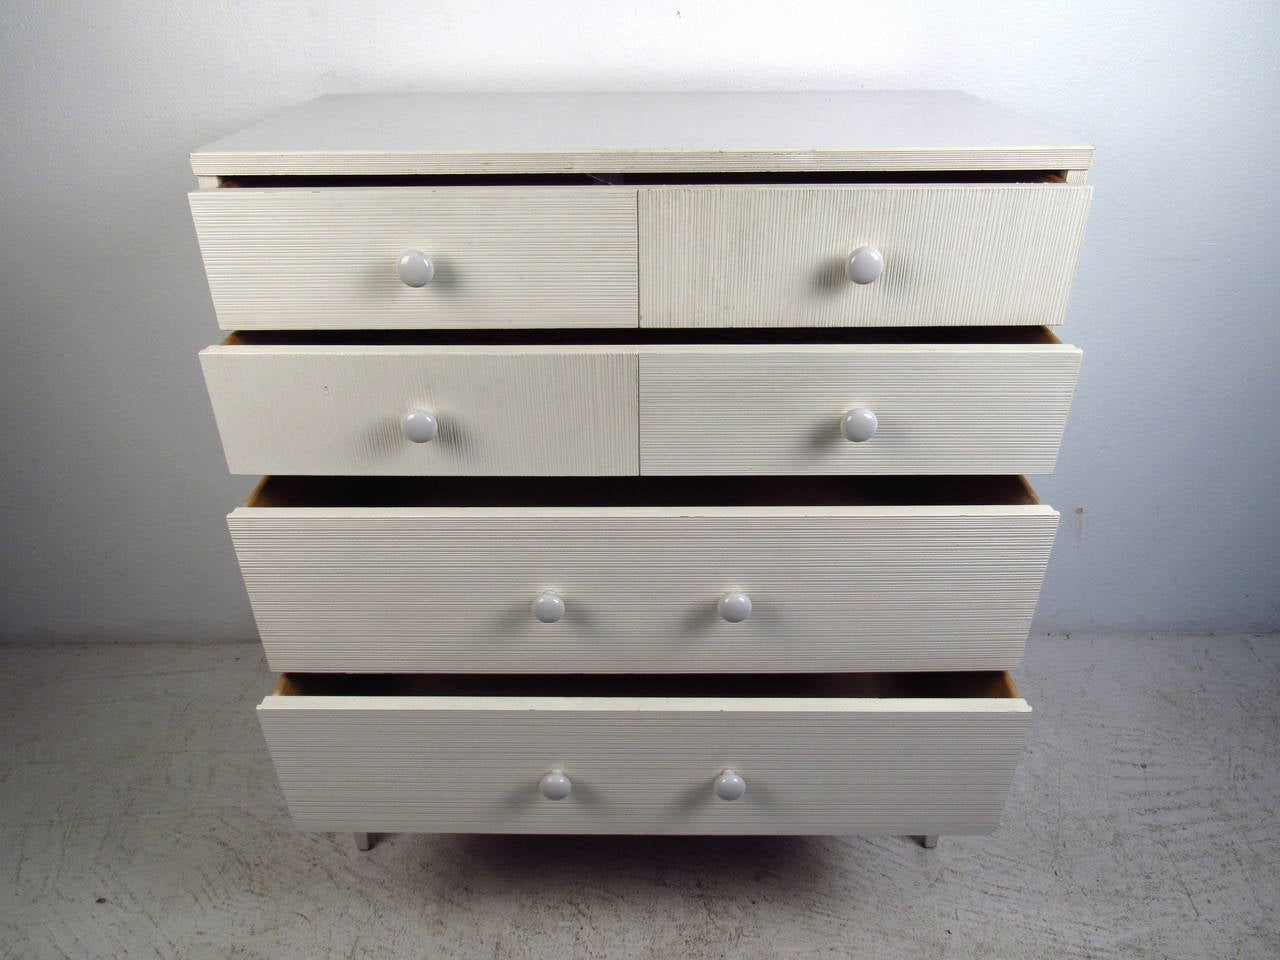 White Four Drawer High Boy Dresser by Kroehler Furniture